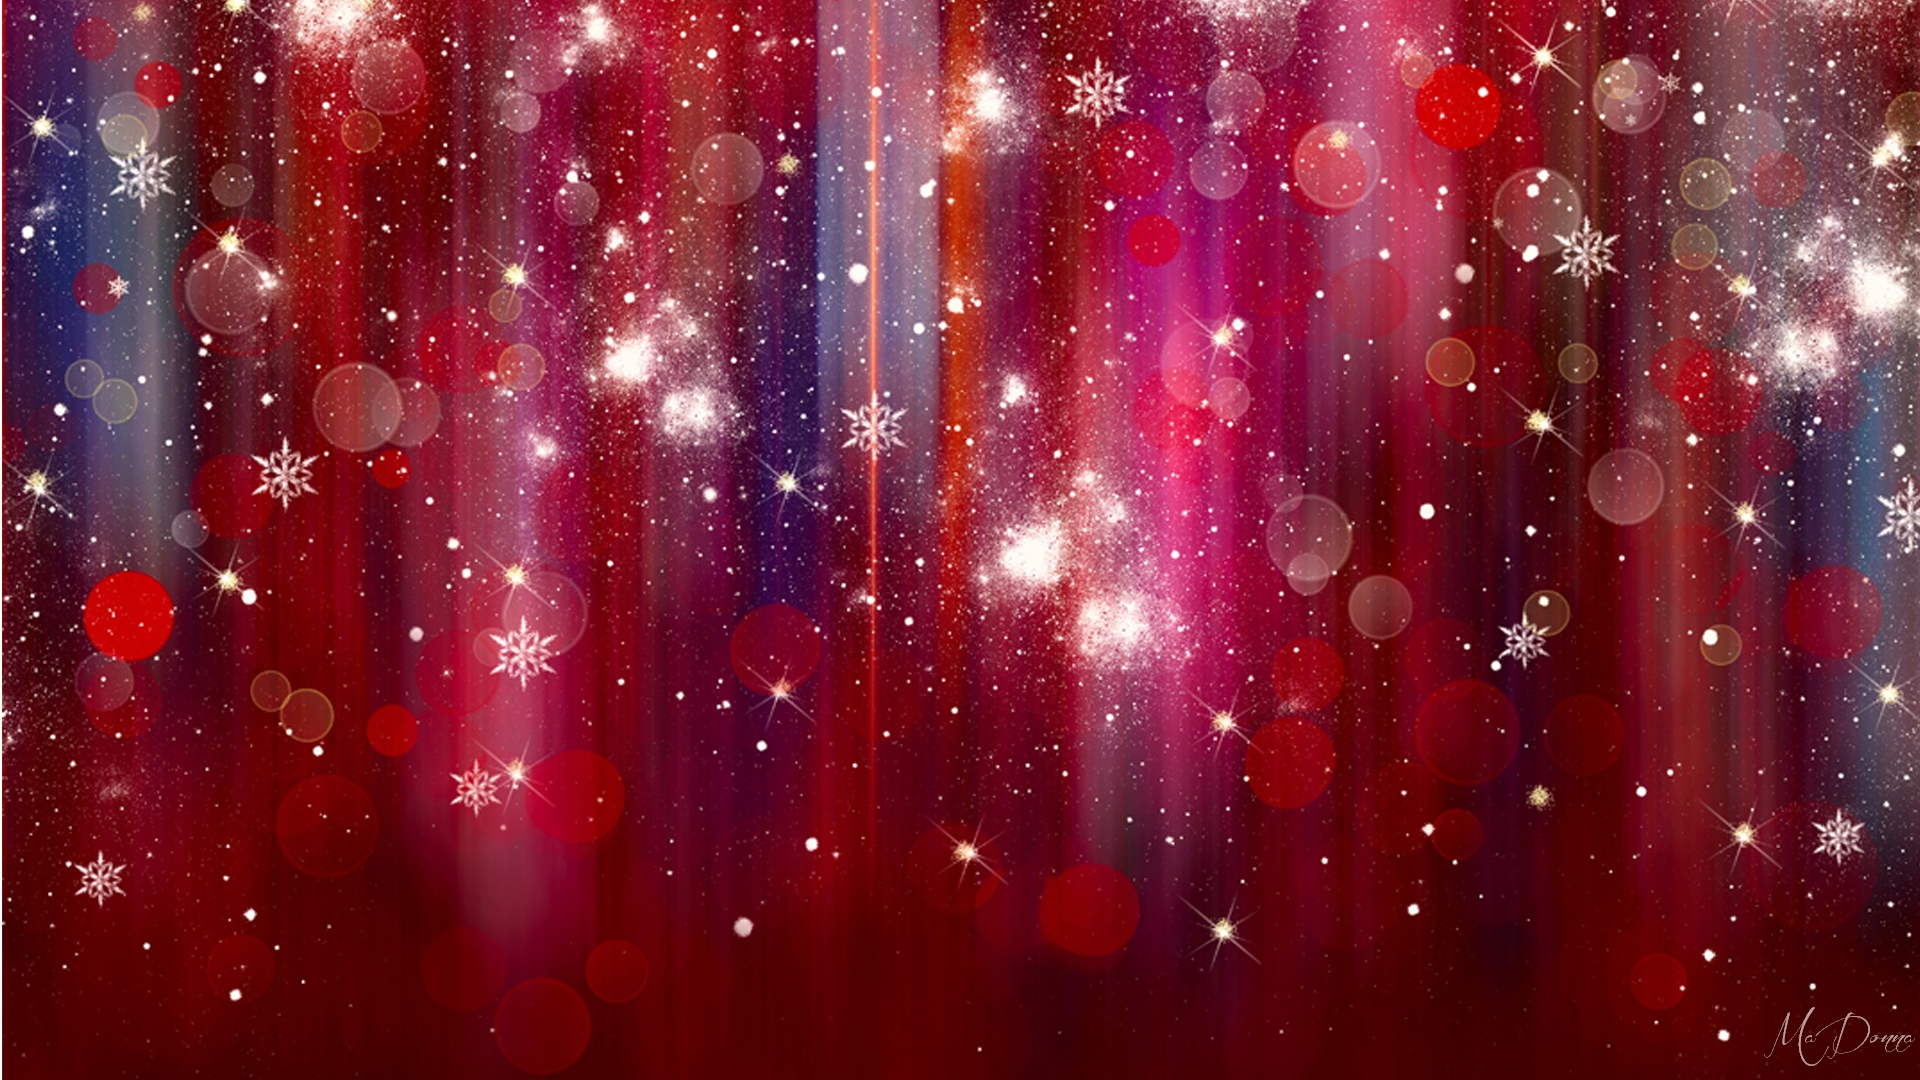 Cool Wallpaper High Quality Glitter - Glitter-Red-Wallpaper-10  Perfect Image Reference_218170.jpg